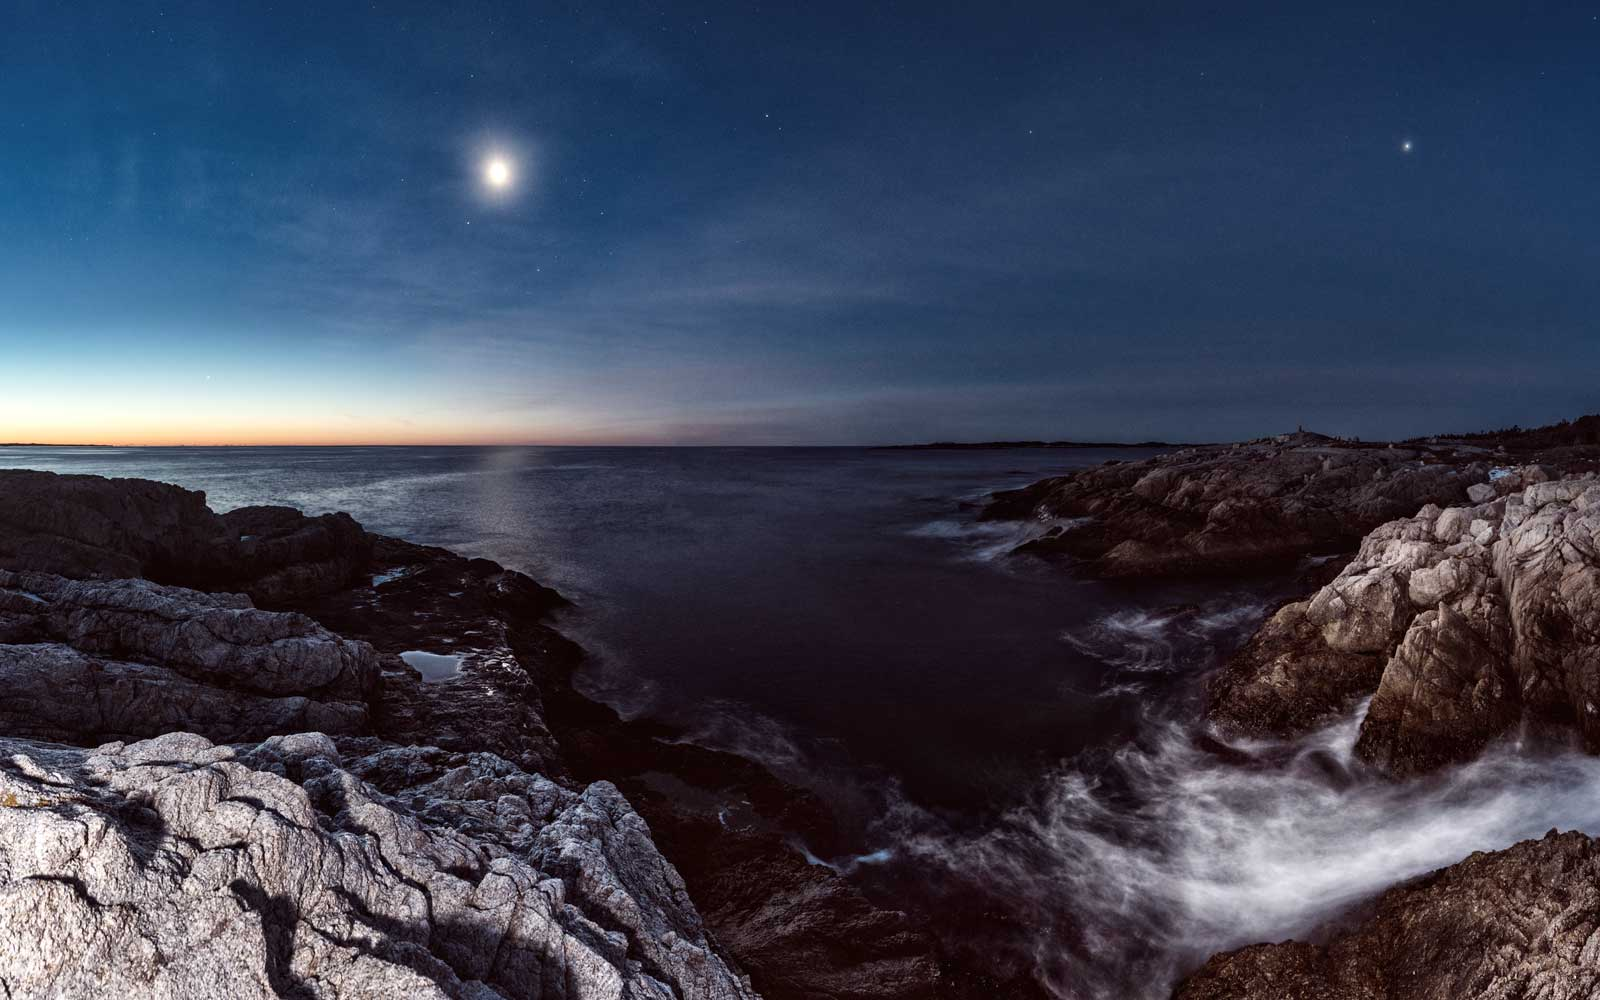 Mercury, Venus, Saturn, Mars, Jupiter, our Moon and Earth together in pre-dawn light overlooking a rugged stretch of Nova Scotian coastline.